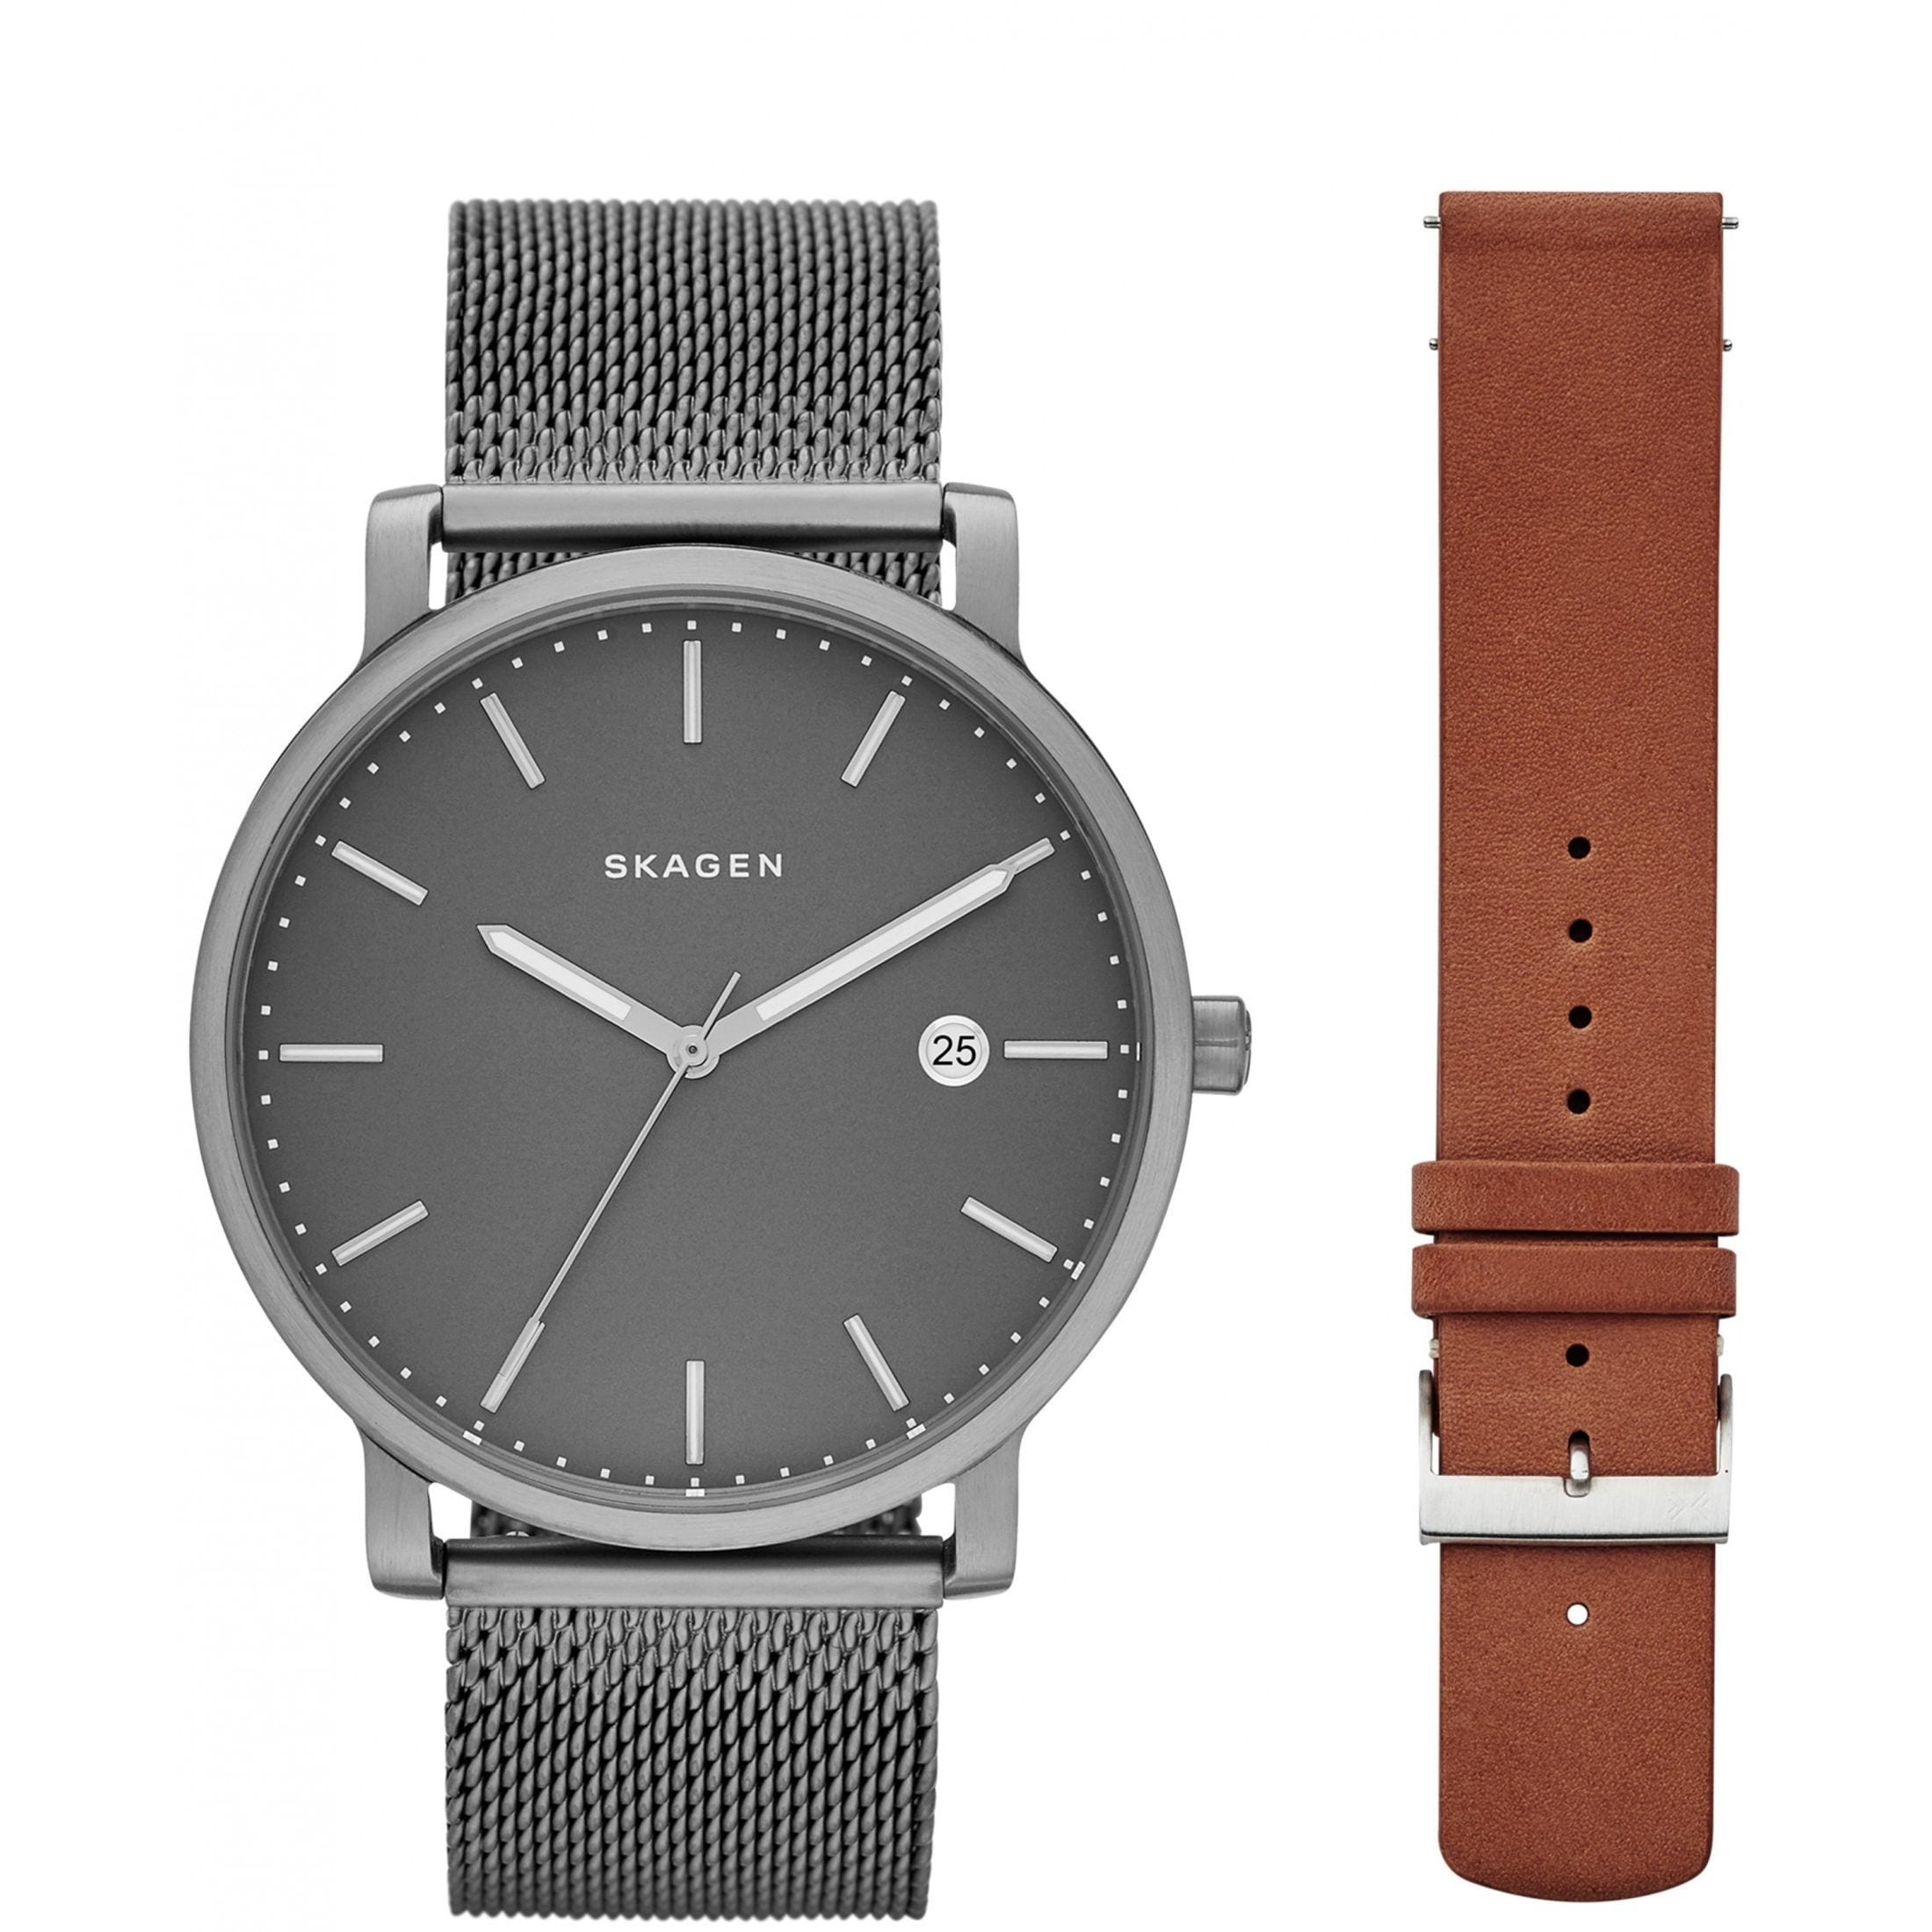 tone s watch womens zoom a hagen steel prev comp layer women mesh watches product desktop gold skagen src p next dwp belk rectangular